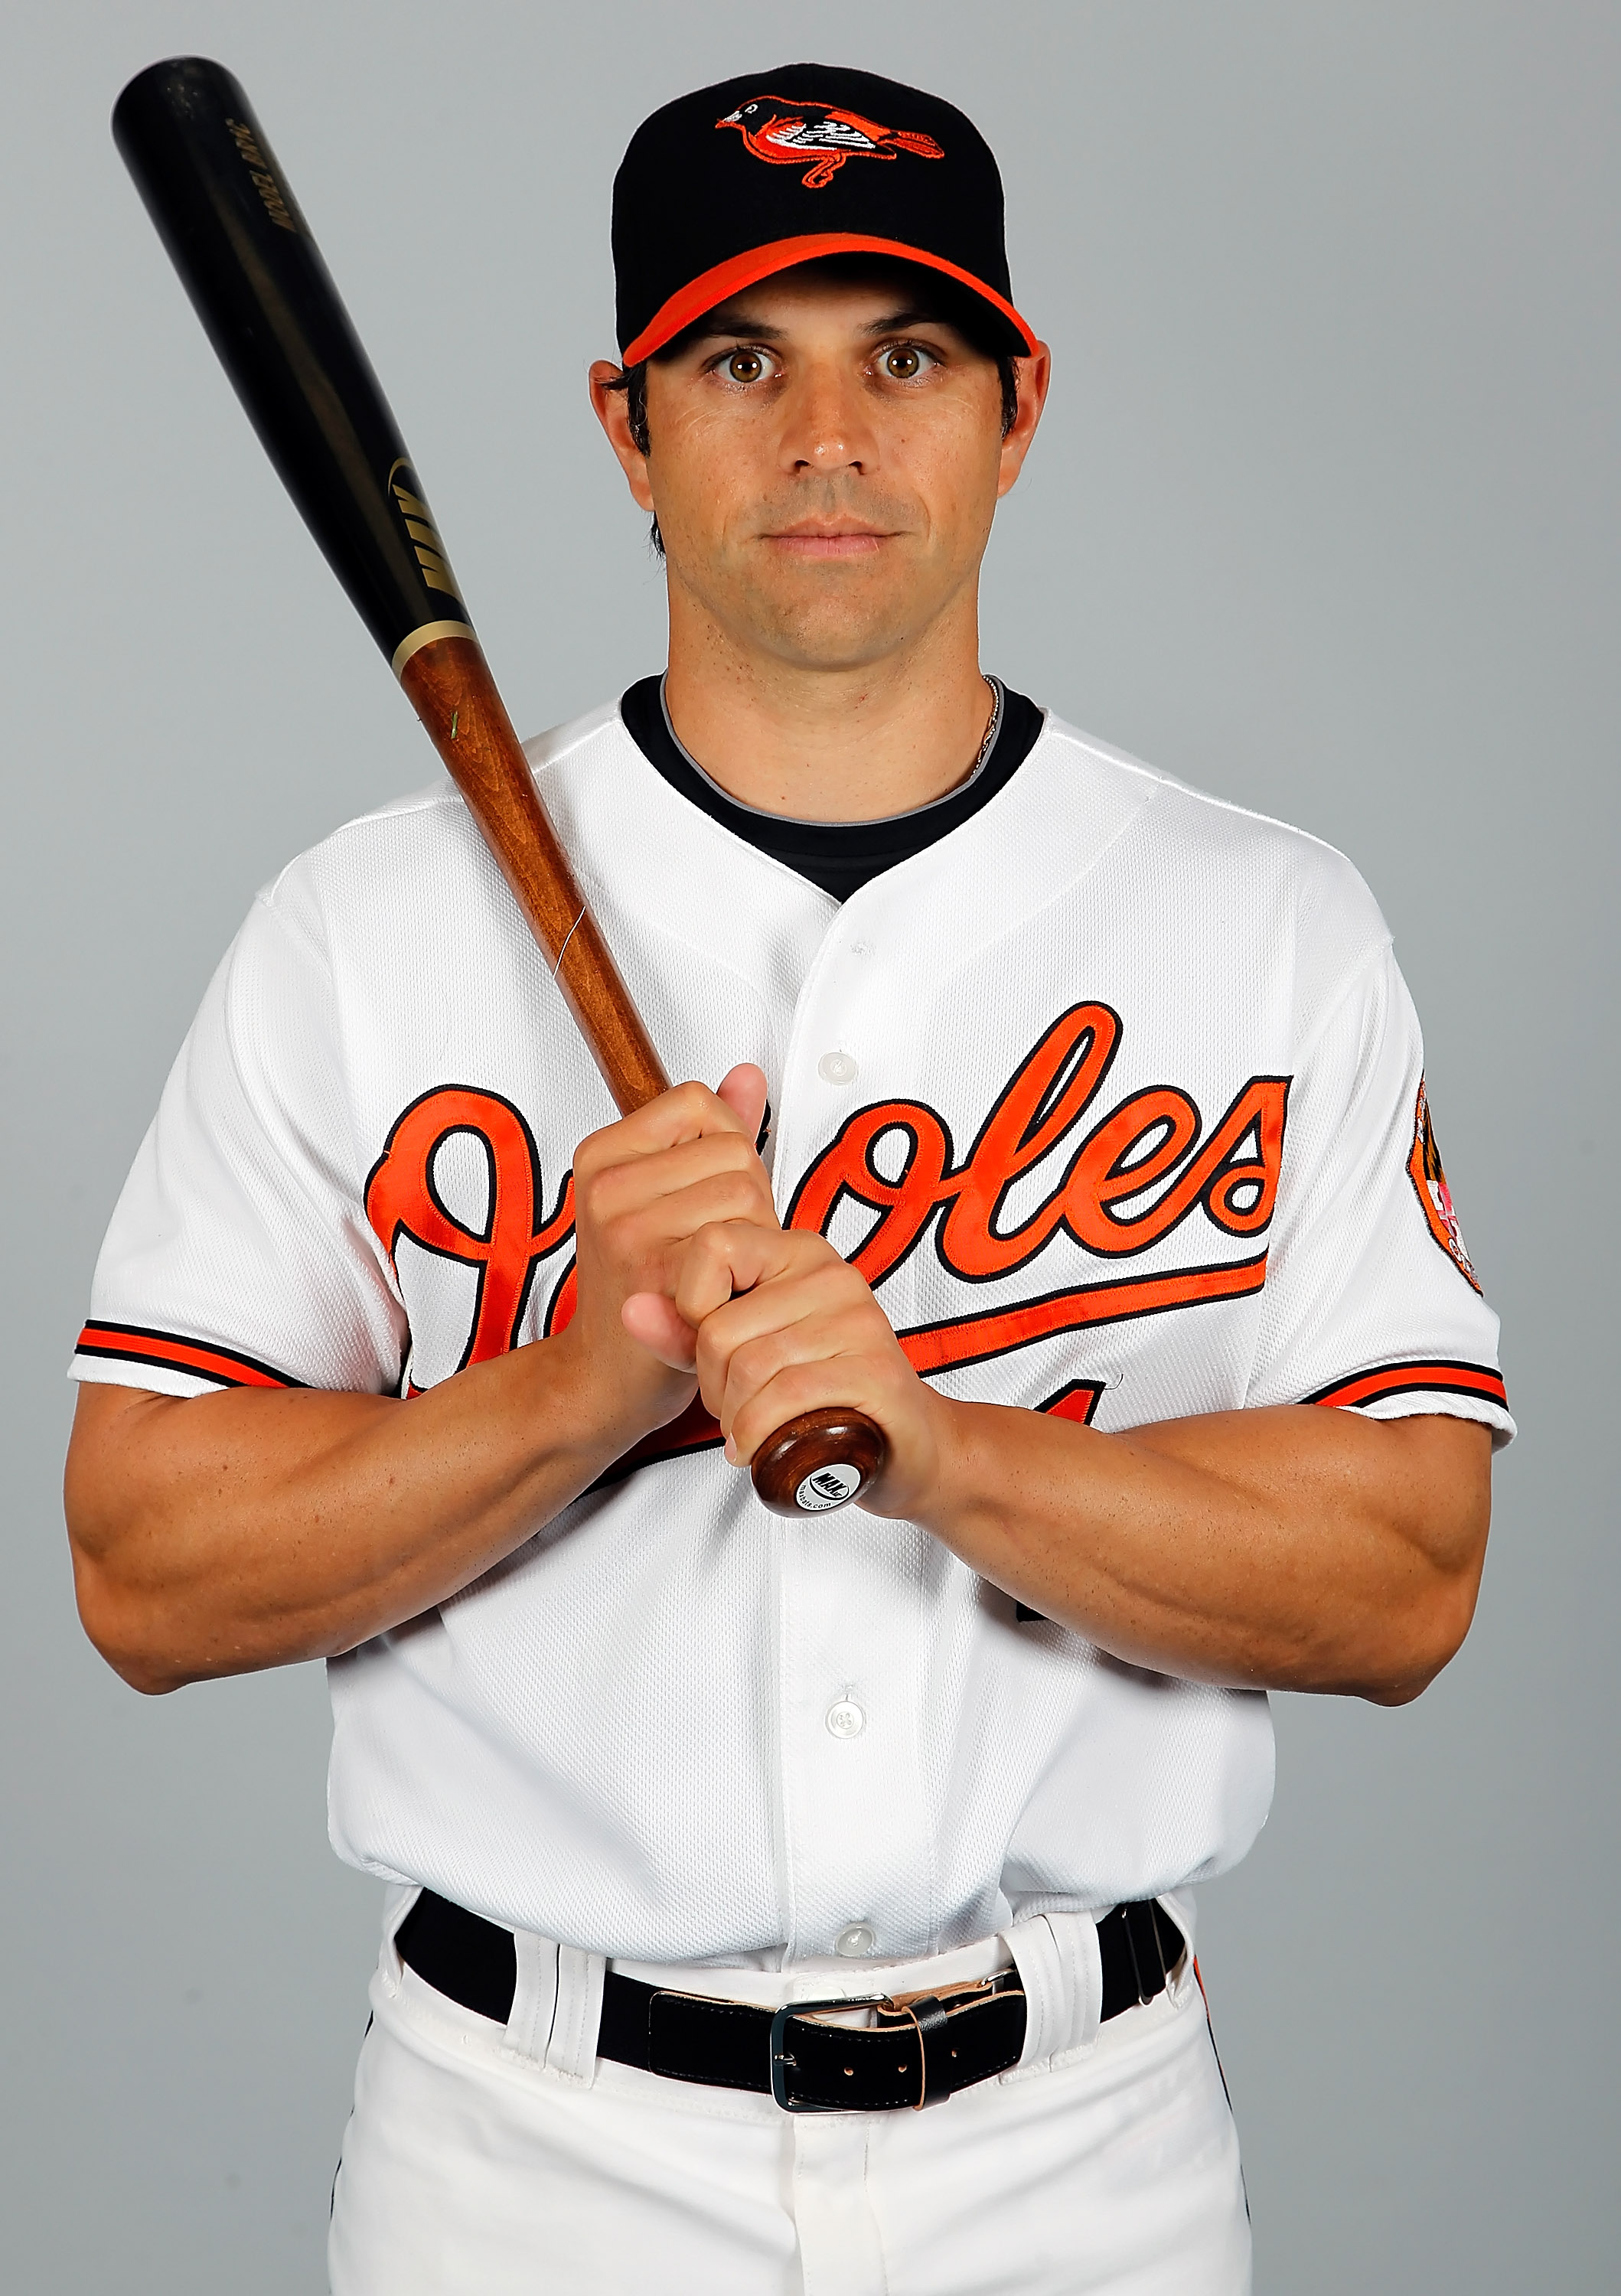 SARASOTA, FL - FEBRUARY 26:  Infielder Brian Roberts #1 of the Baltimore Orioles poses for a photo during photo day at Ed Smith Stadium on February 26, 2011 in Sarasota, Florida.  (Photo by J. Meric/Getty Images)